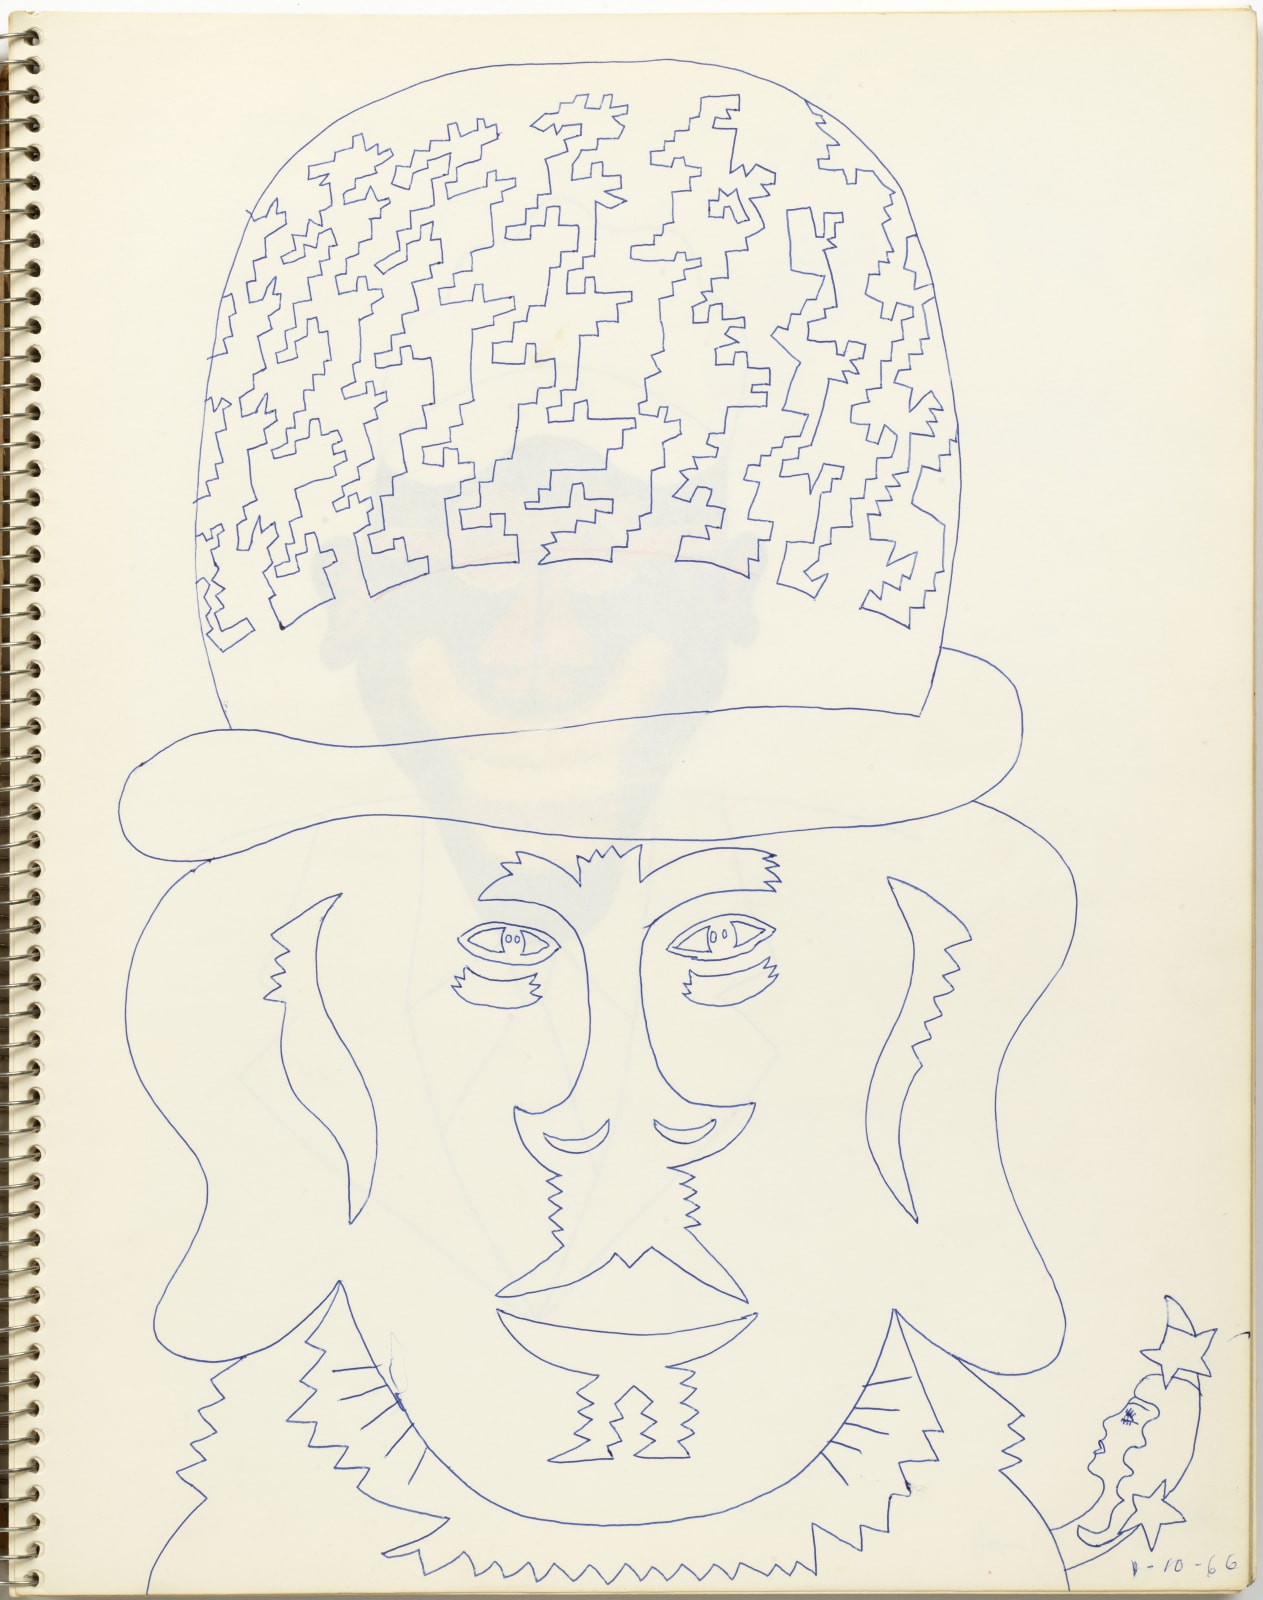 Untitled, January 10, 1966, ball-point pen on sketchbook paper, 14 x 11 inches